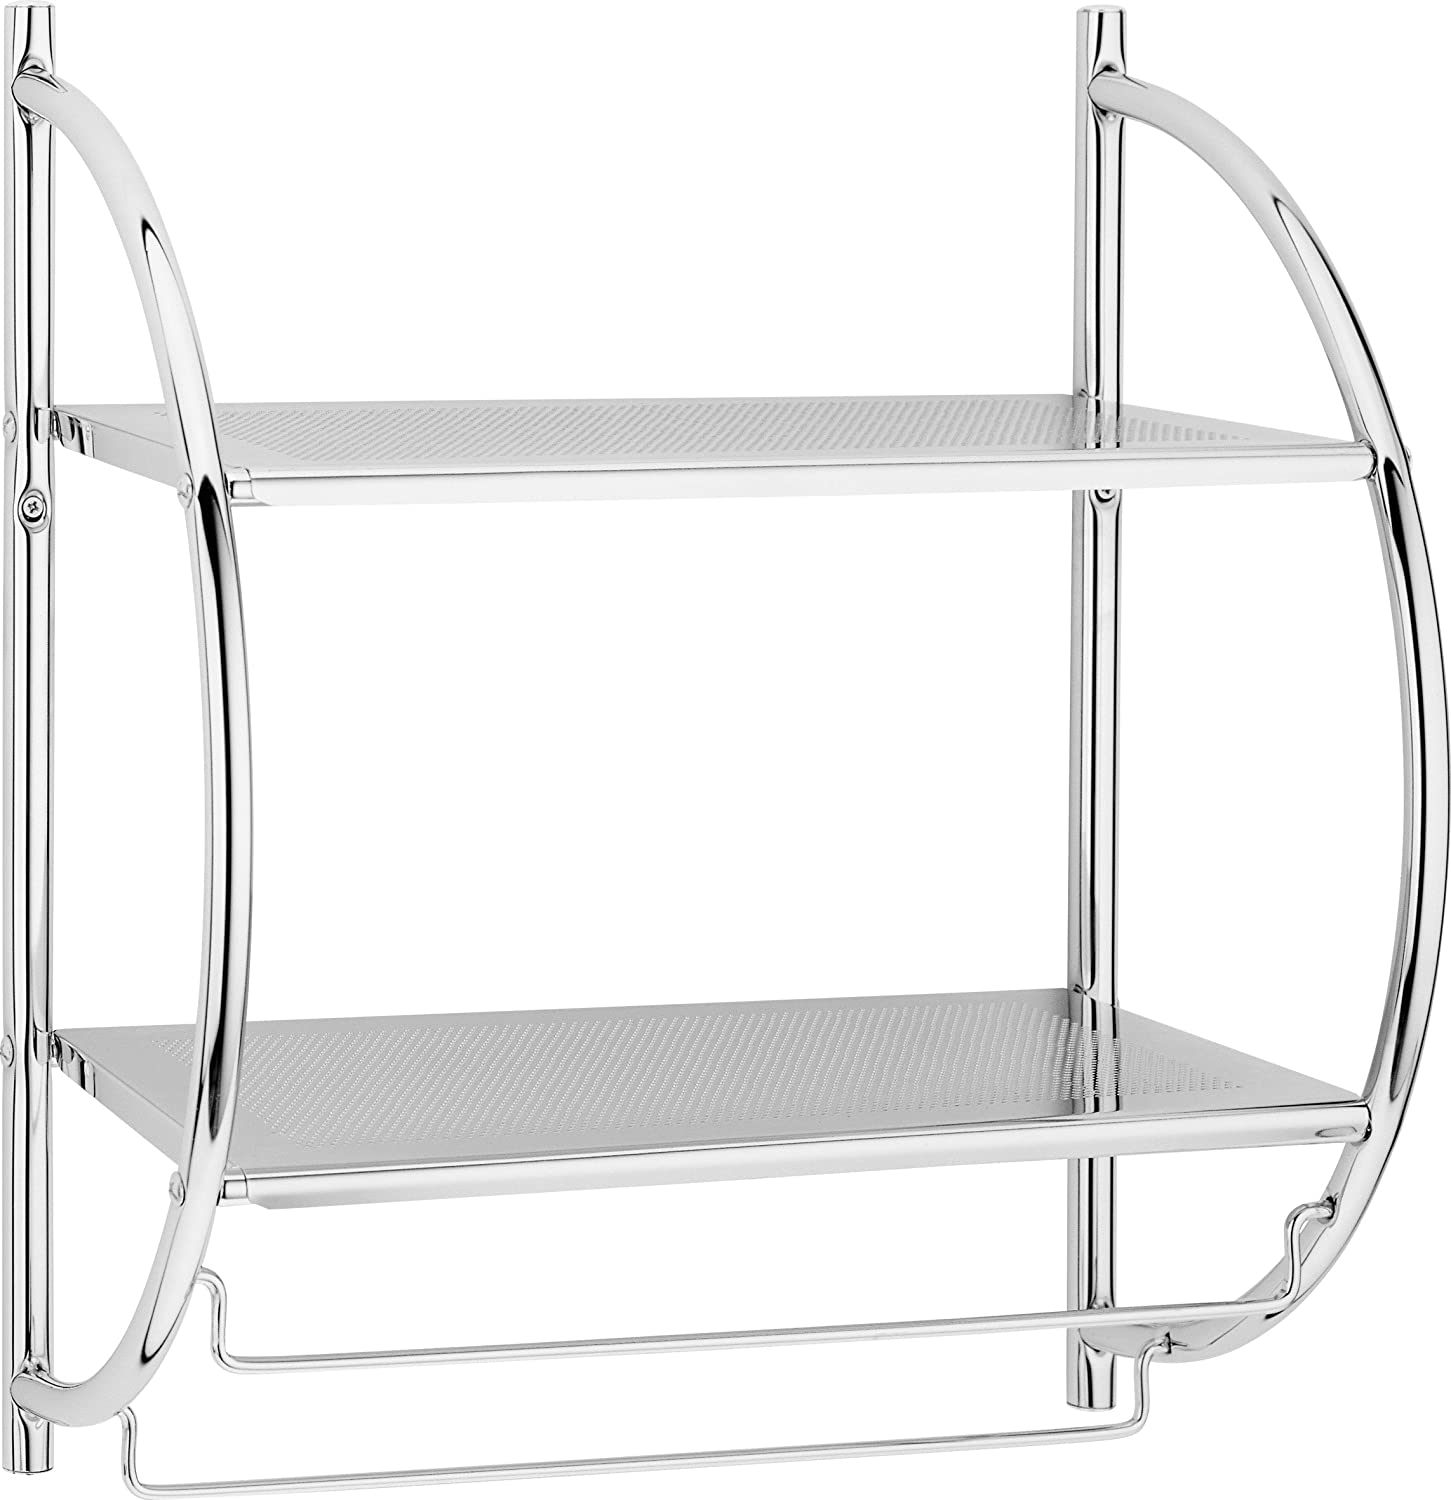 New 2 TIER MODERN CHROME WALL MOUNTED BATHROOM SHELF UNIT TOWEL RAIL RACK